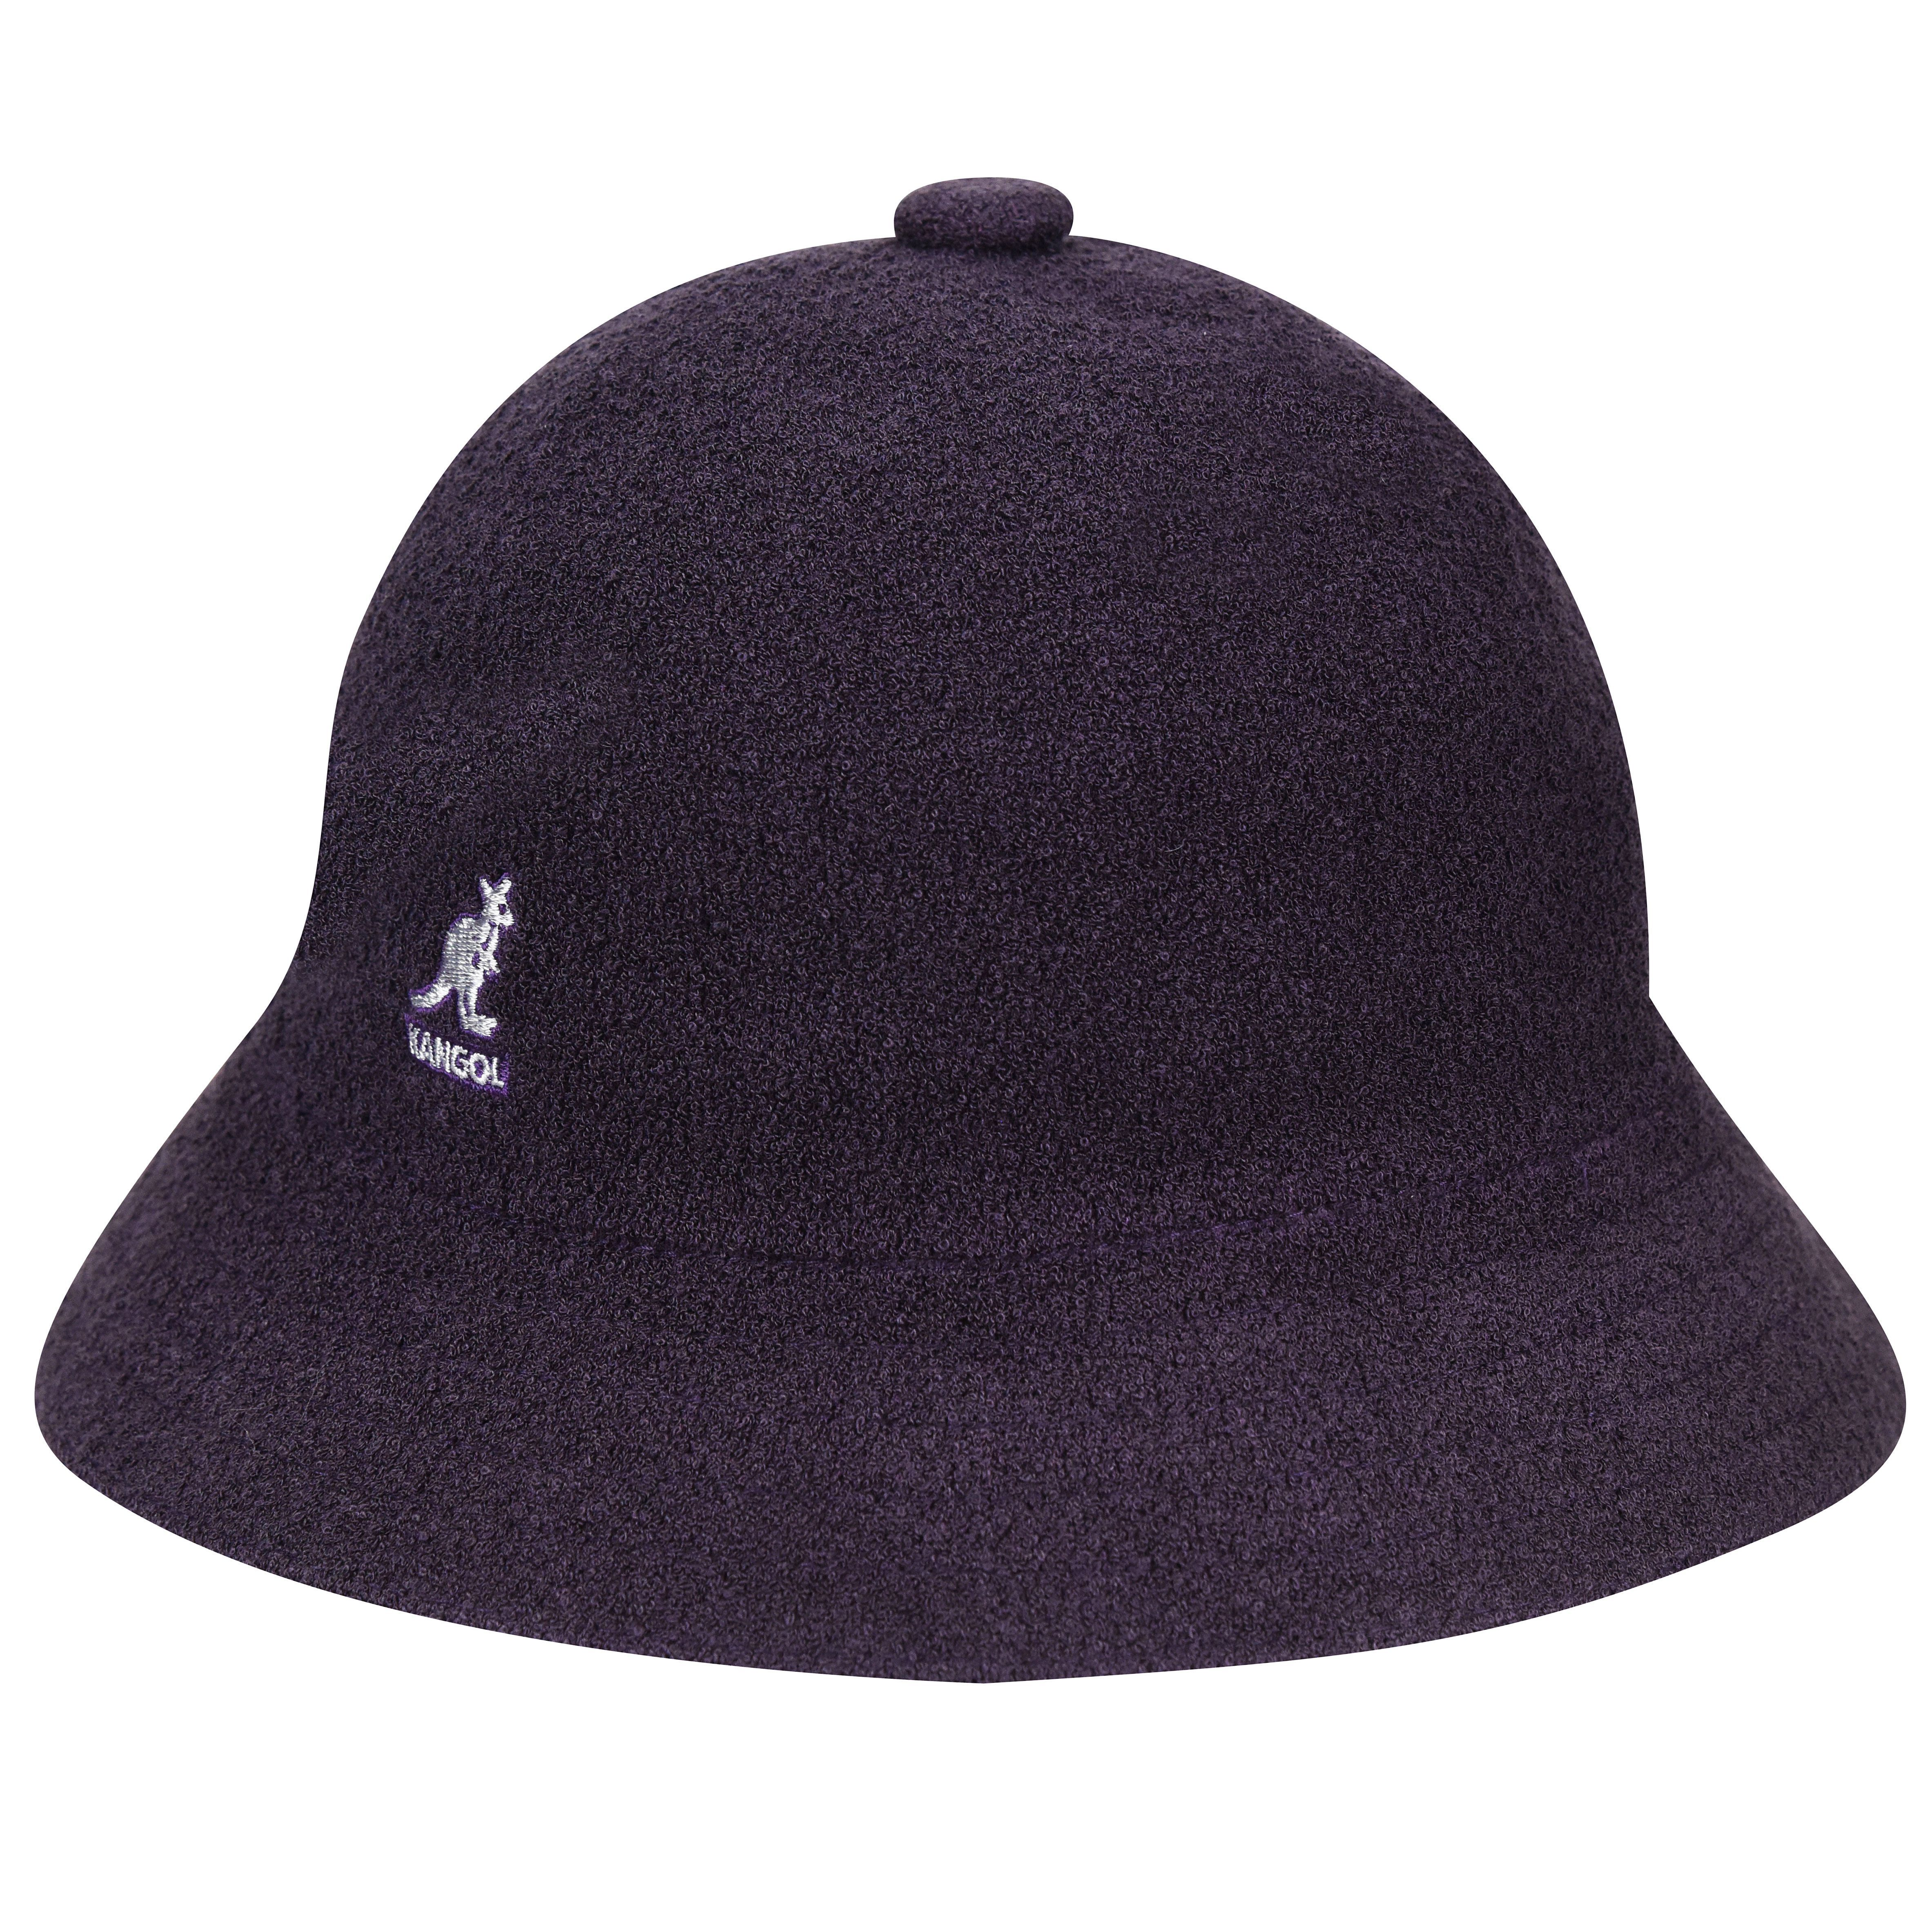 e05b5ec4ae6 New100% Authentic Kangol Bermuda Casual Bucket Cap Hat 0397Bc Sizes S M L  Xl Xxl